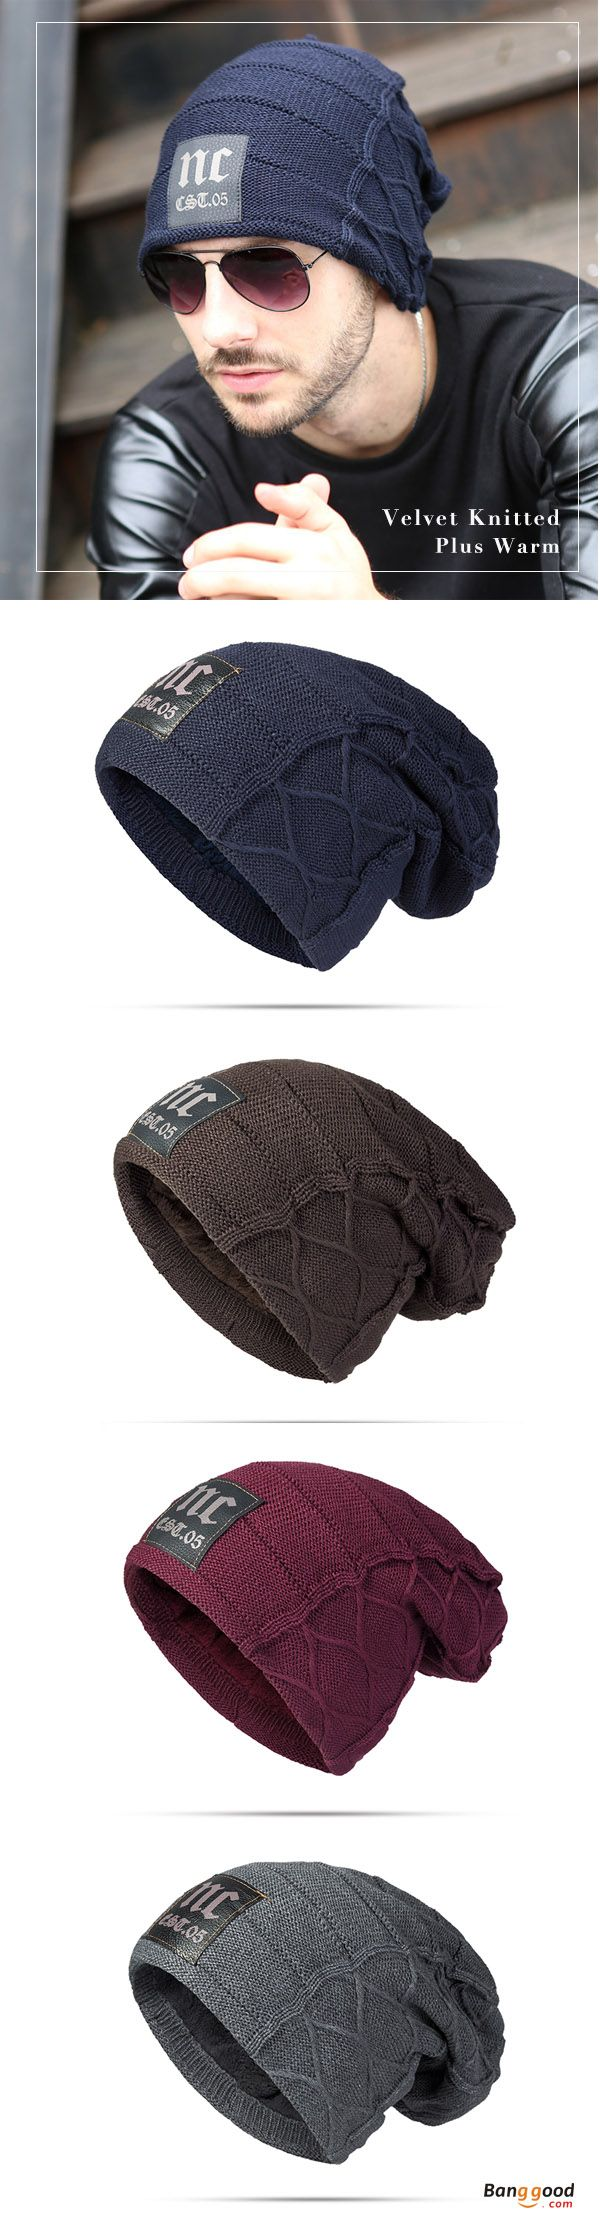 US$8.99+Free shipping. Mens Cap, Plus, Velvet, Winter, Warm, Knitted Hat, Casual, Letter, Solid, Skullies, Beanie Hat. Color: Navy, Khaki, Deep Red, Black, Coffee, Dark Grey. Shop now~